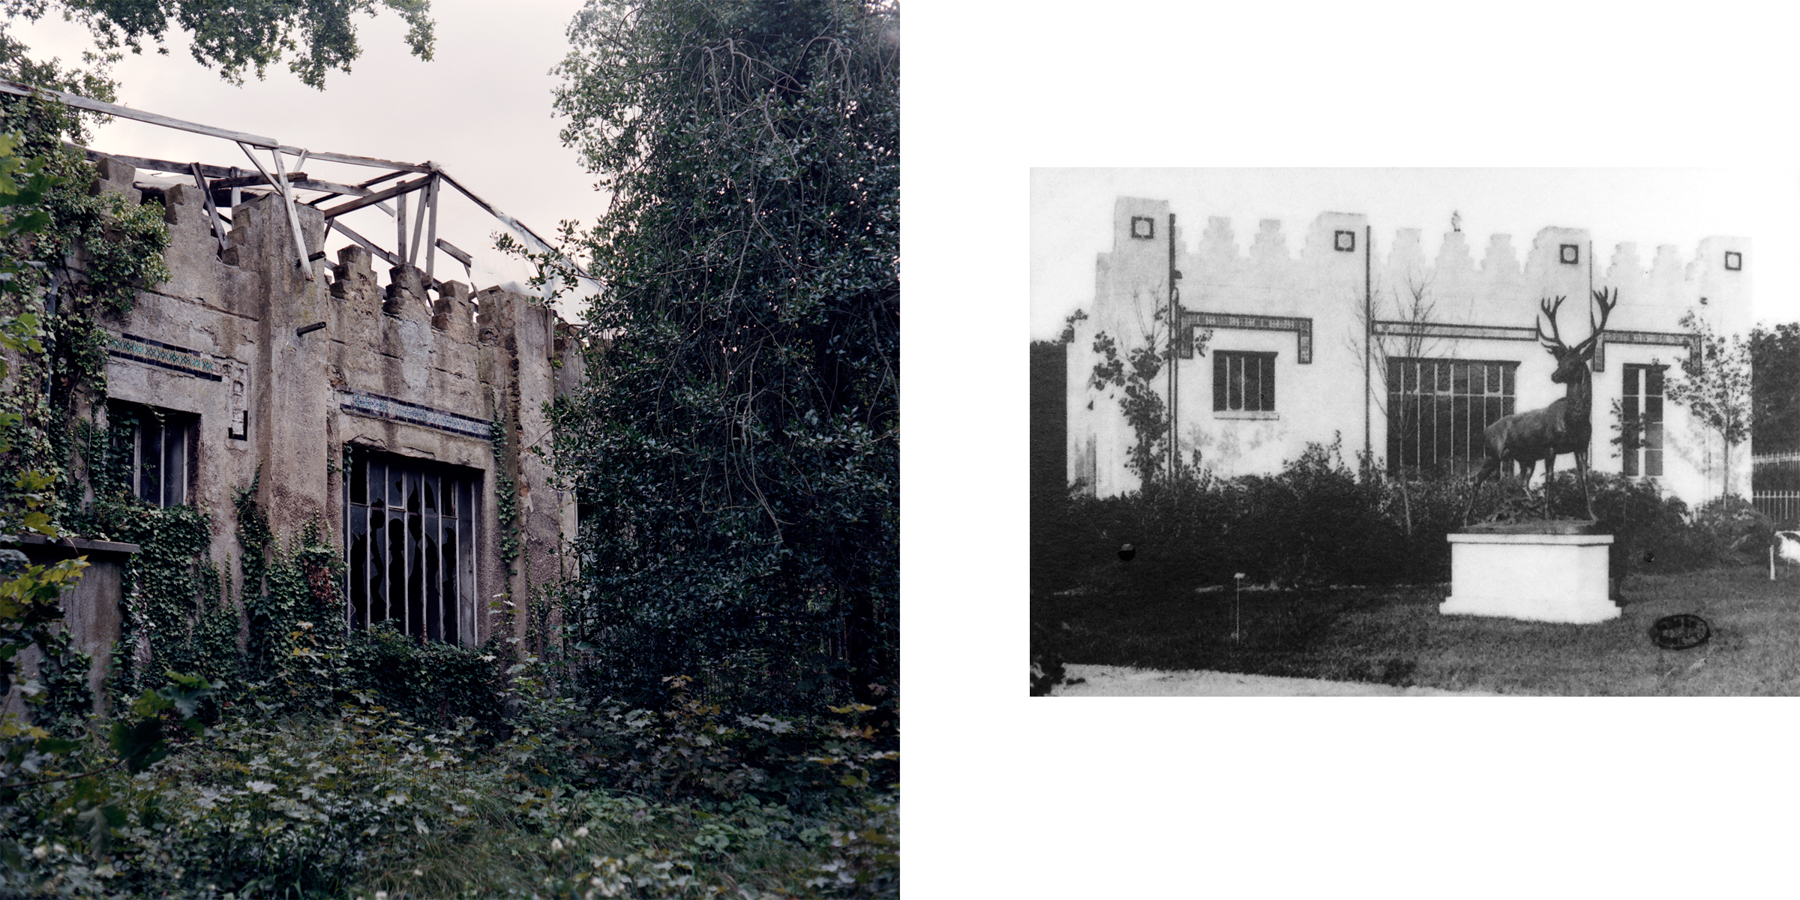 Left: The Moroccan pavilion, built in 1902, housed the University of Colonial Agriculture and eventually became a laboratory, like the Tunisian and Guyanese pavilions. There is little information about the work done in the laboratories, but there is mention of genetic research happening in 1925, at the height of the eugenics movement. Right: A historical photo depicts the Moroccan pavilion during the 1907 colonial exposition. Nogent-sur-Marne, France.